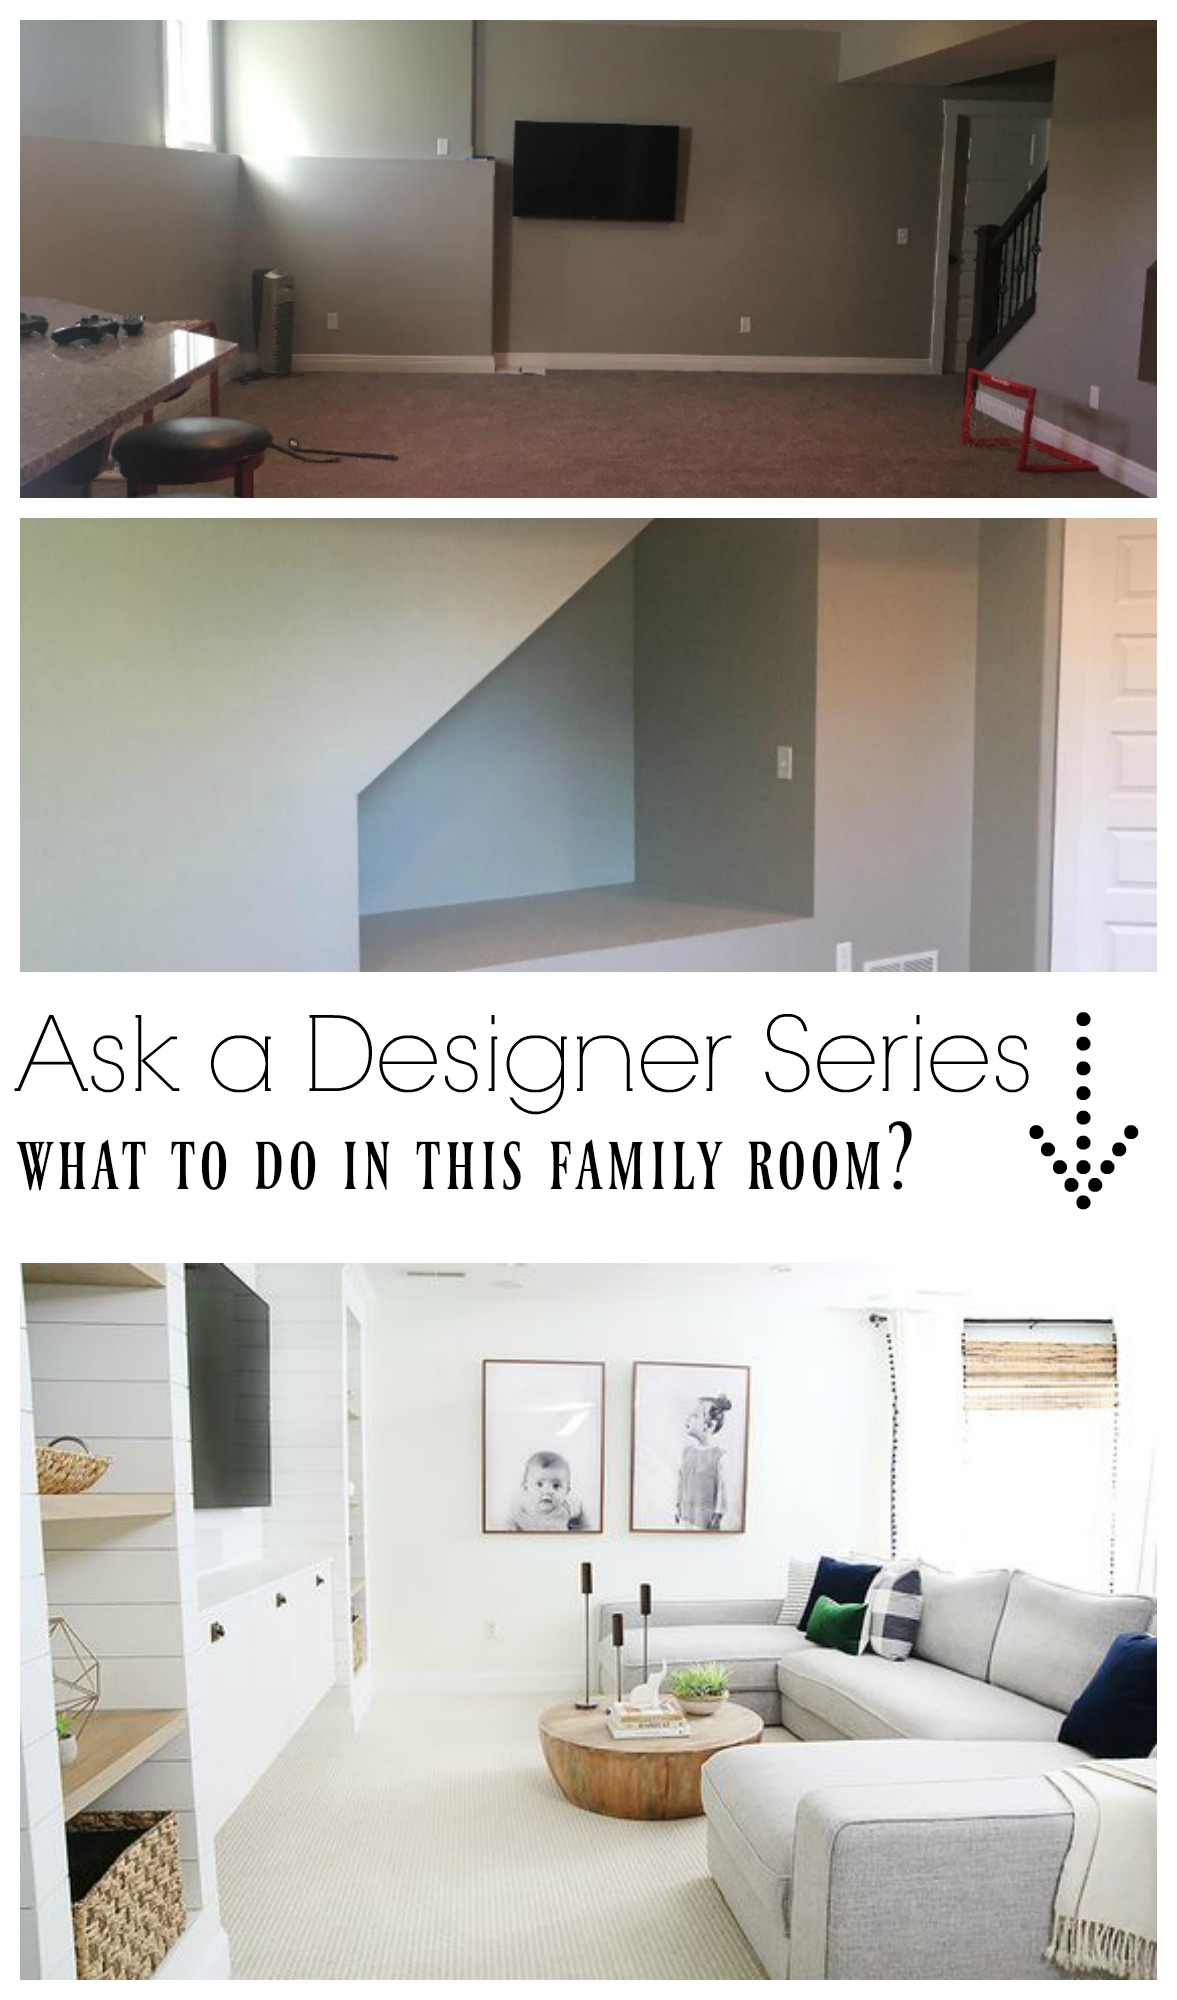 Ask a Designer Series- Ideas for Family Room that is Casual